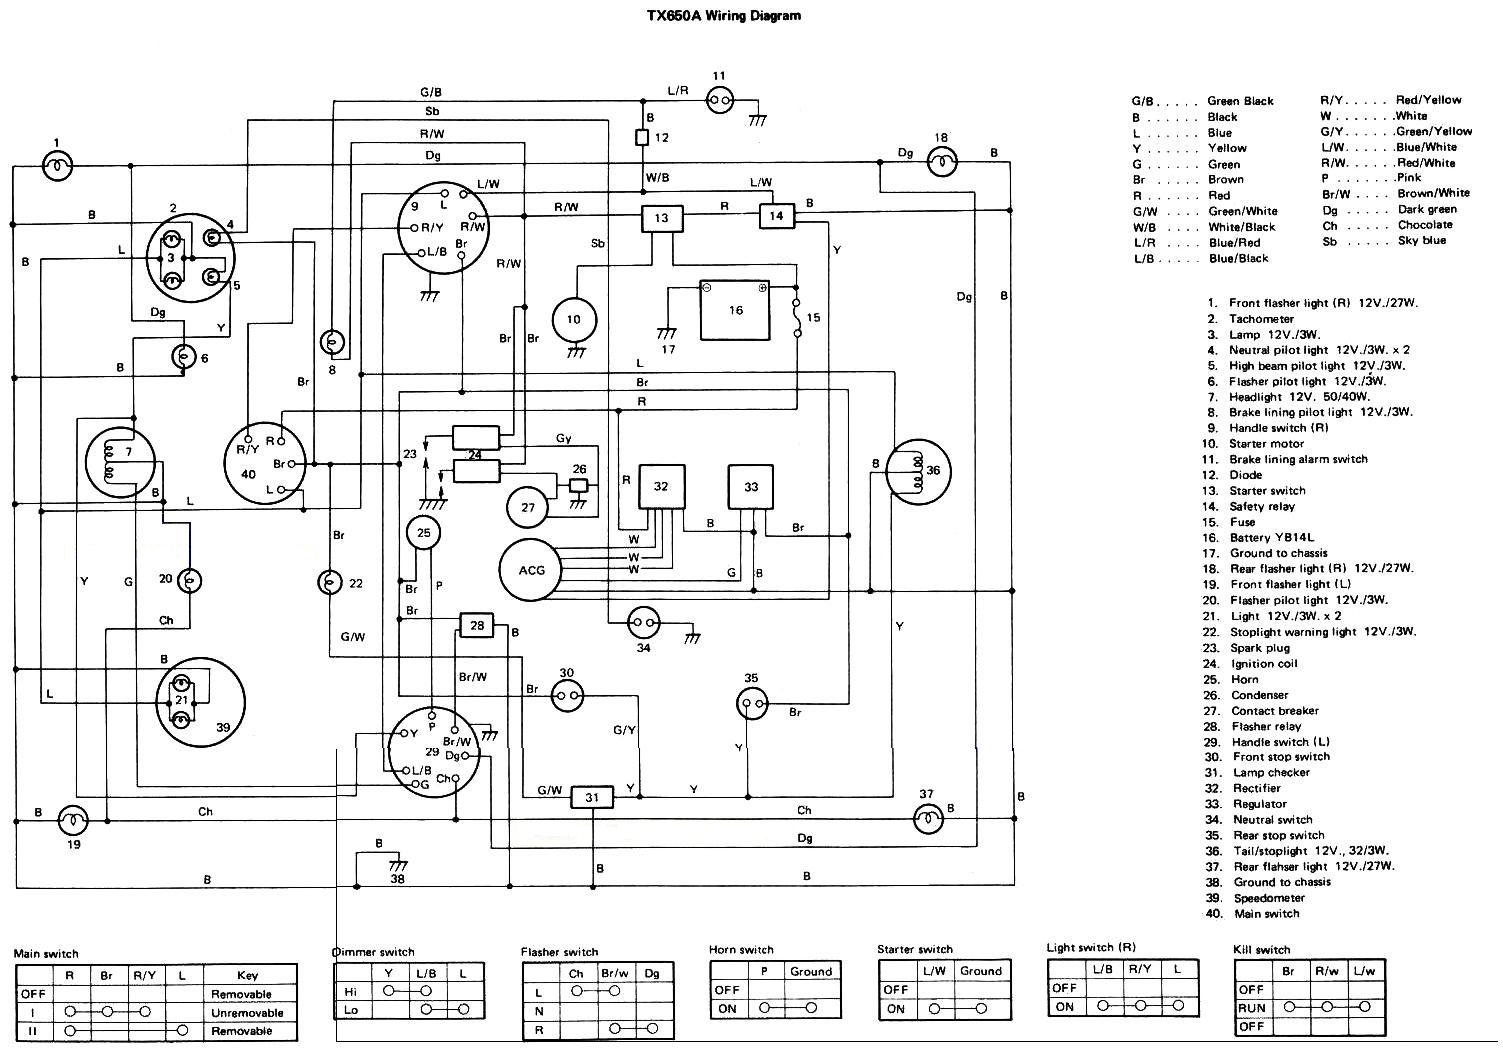 1981 Yamaha Xj650 Wiring Diagram - Schematics Online on